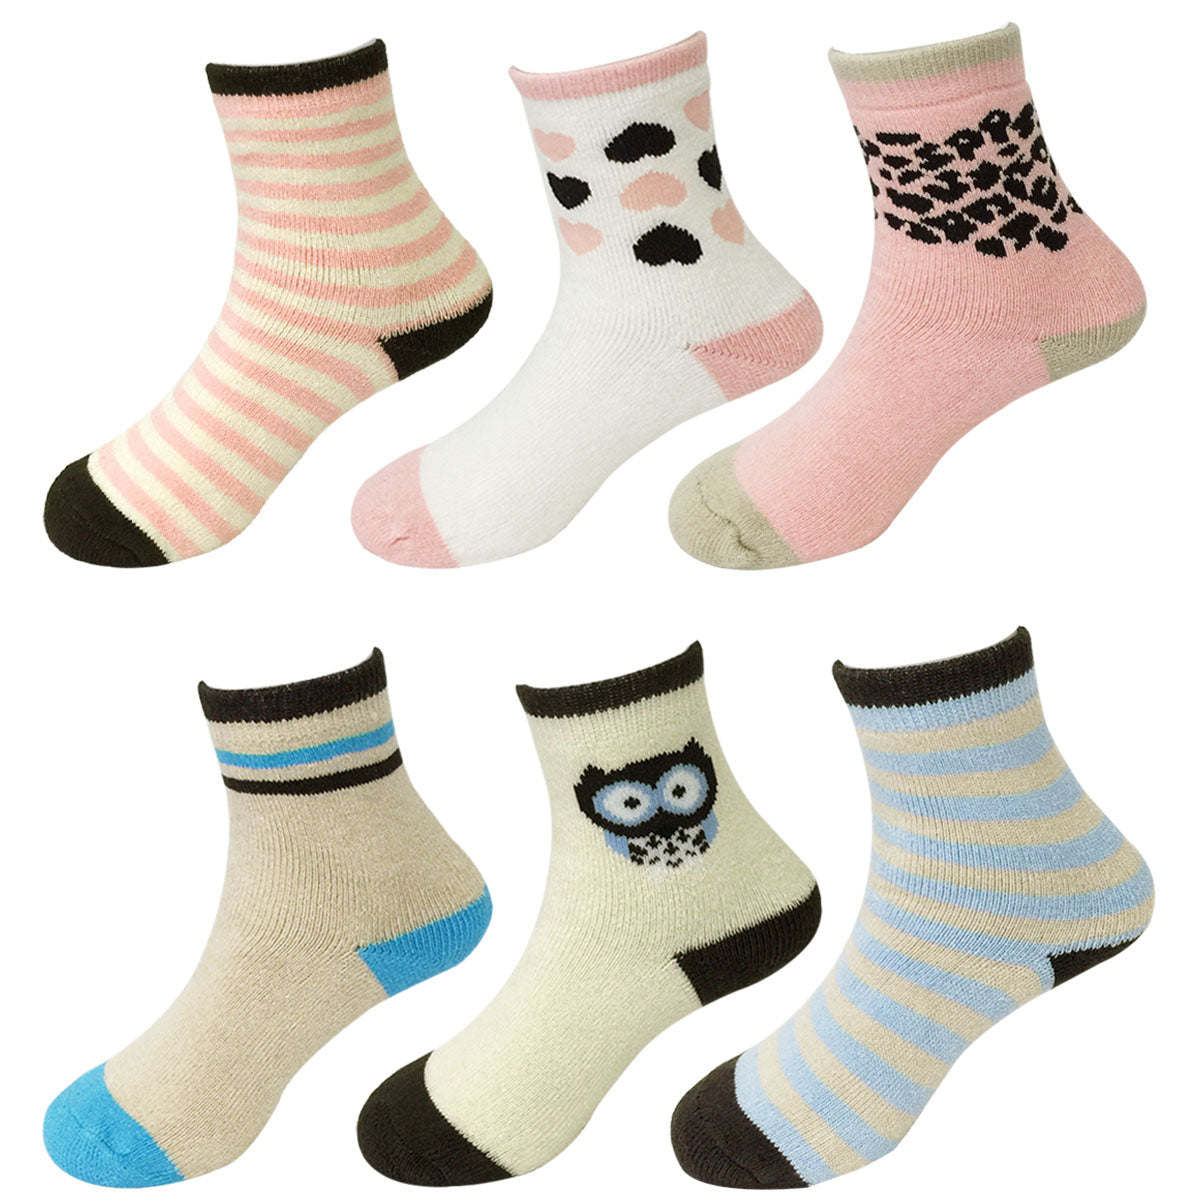 Wrapables Toddler's Casual Ankle Socks (Set of 6)